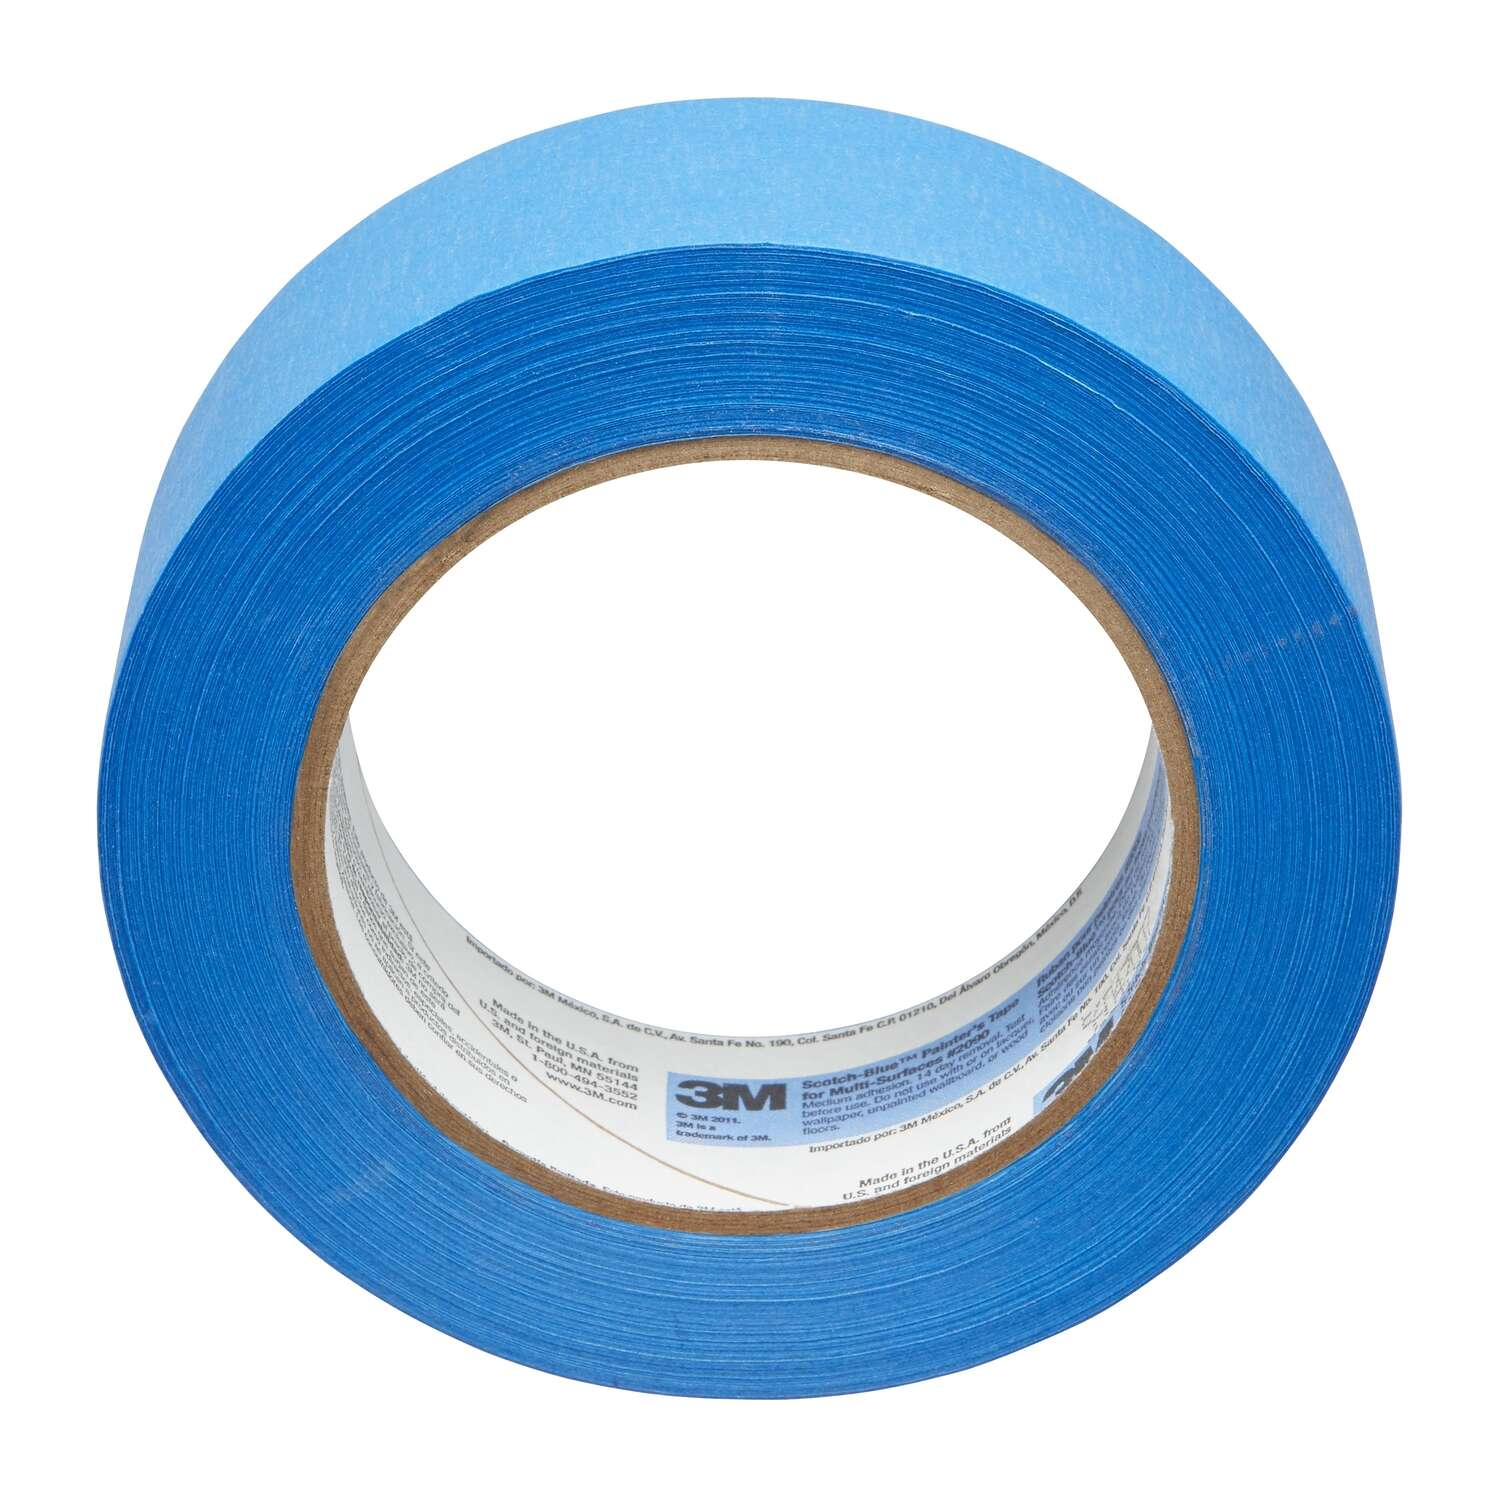 3M  Scotch Blue  2 in. W x 60 yd. L Blue  Medium Strength  Painter's Tape  3 pk